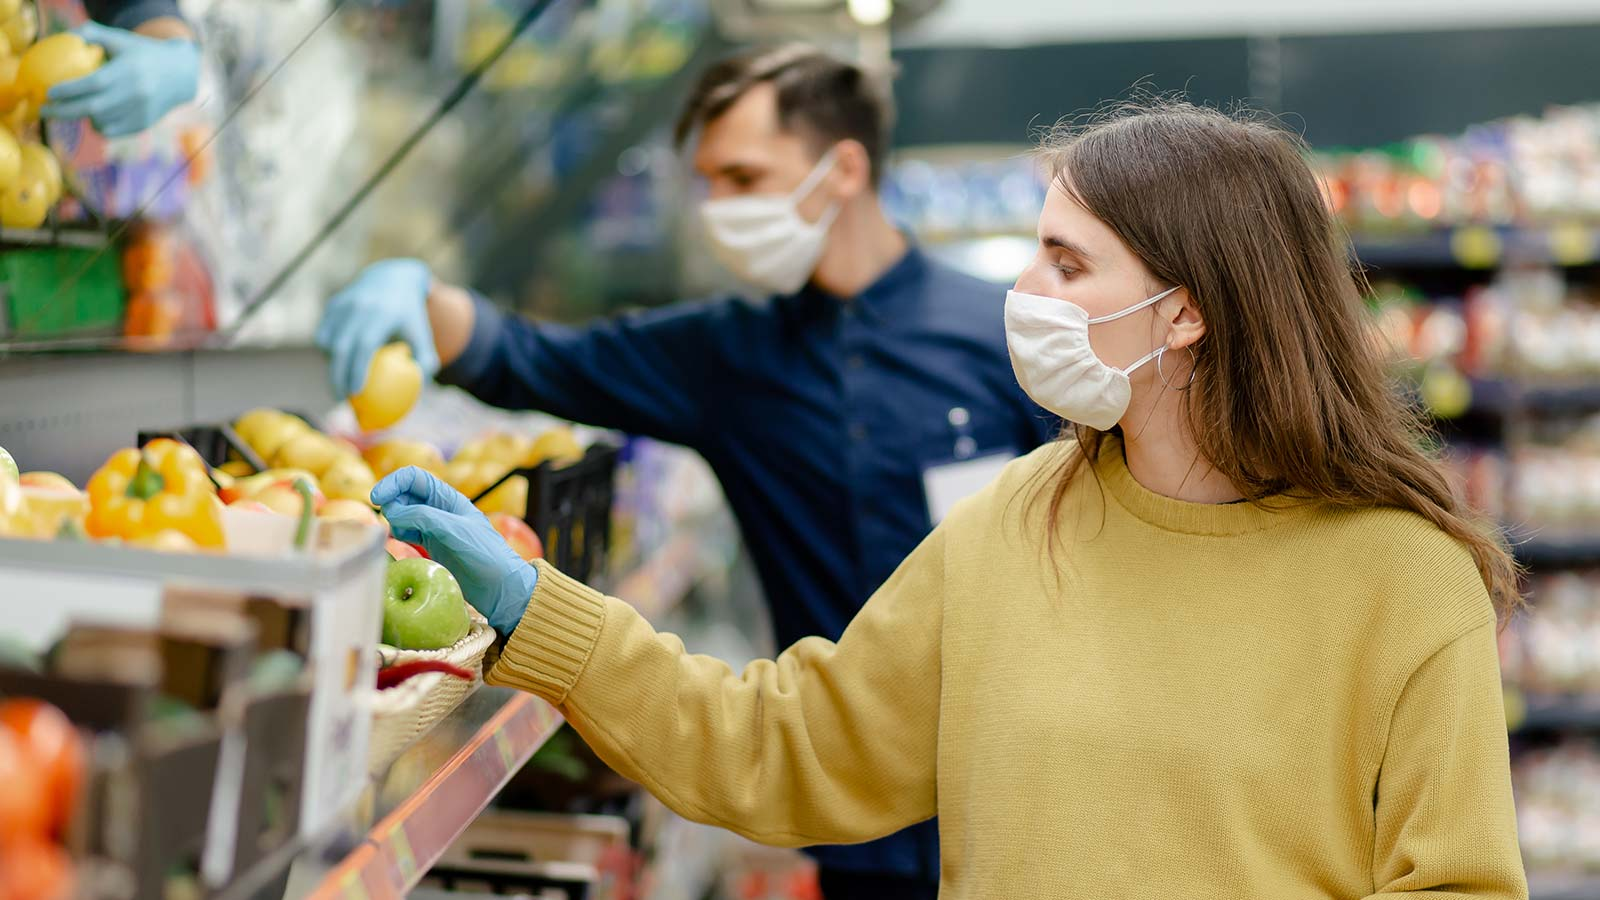 Post pandemic: Retail's future with AI